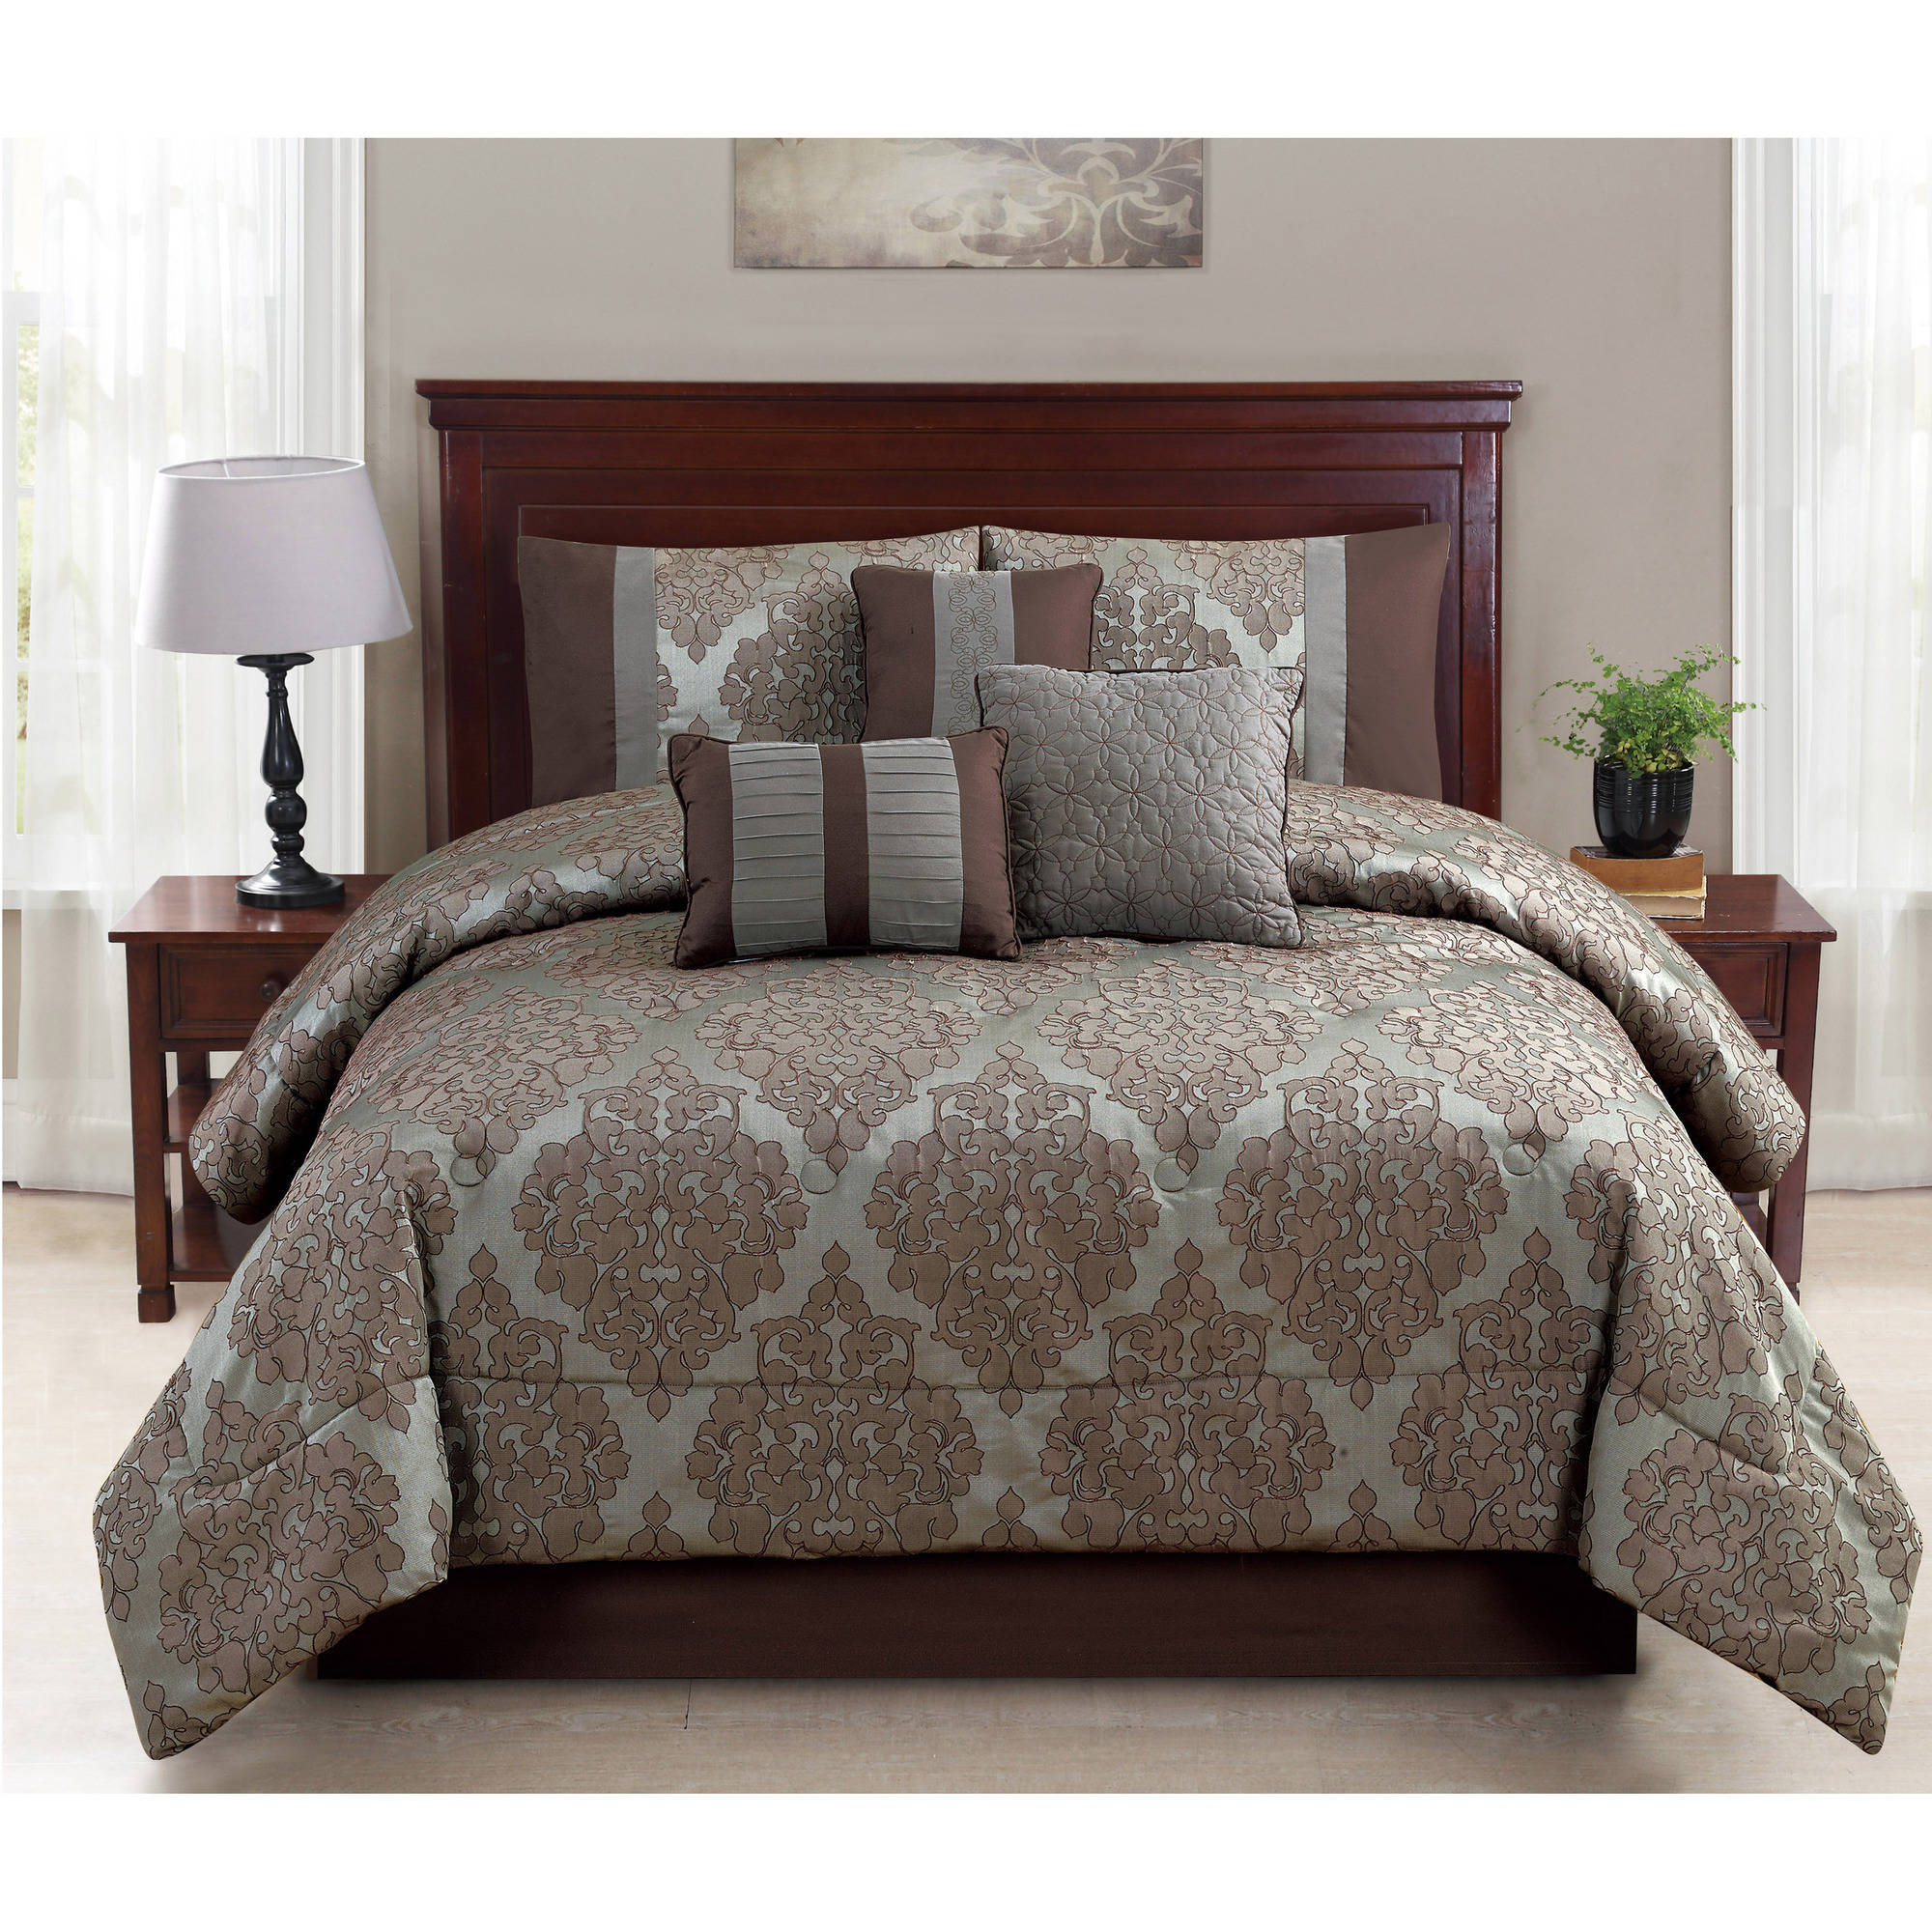 Mainstays 7-Piece Ruth Bedding Comforter Set